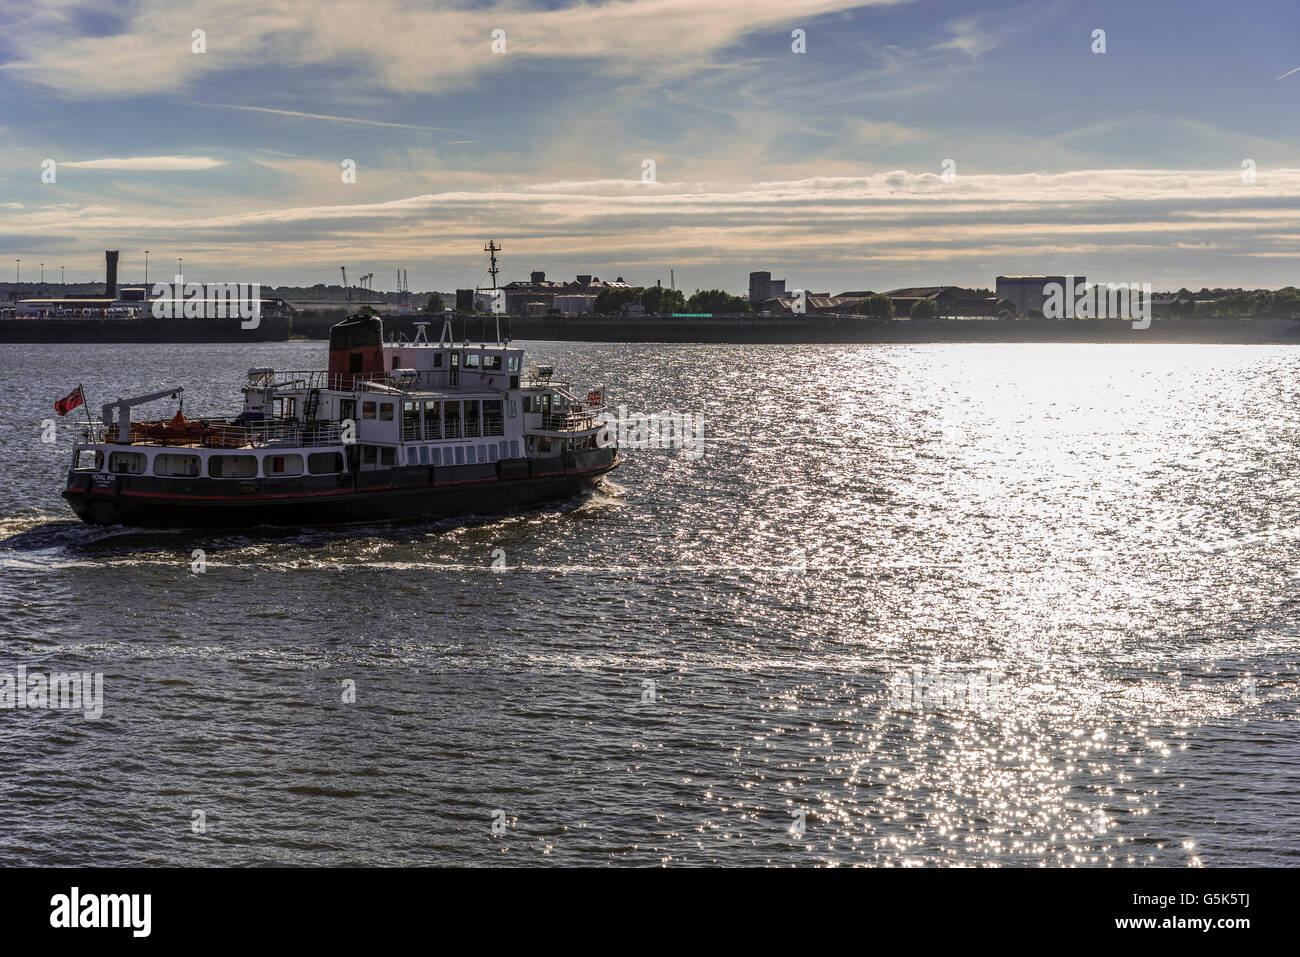 Liverpool Merseyside North West England. The Mersey ferry the Royal Iris crossing the river Mersey in the evening - Stock Image